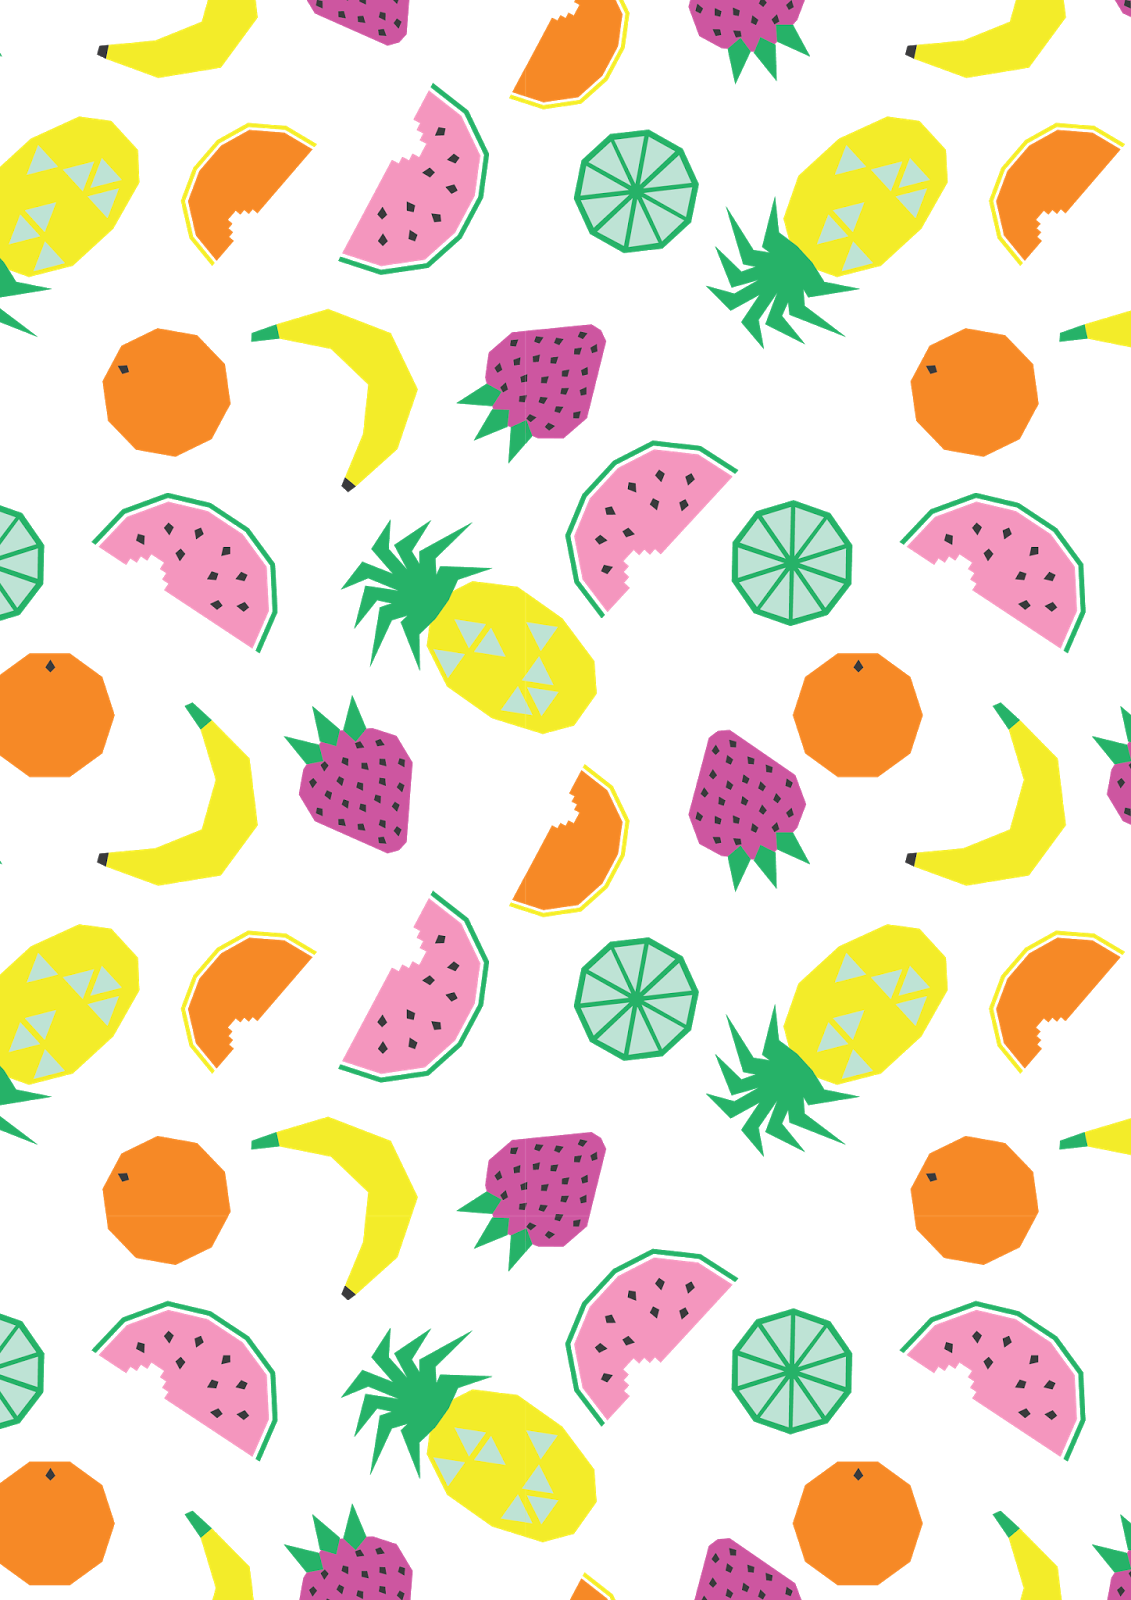 Cute Pineapple Iphone Wallpaper Emily Kiddy Spring Summer 2016 Younger Girls Fashion